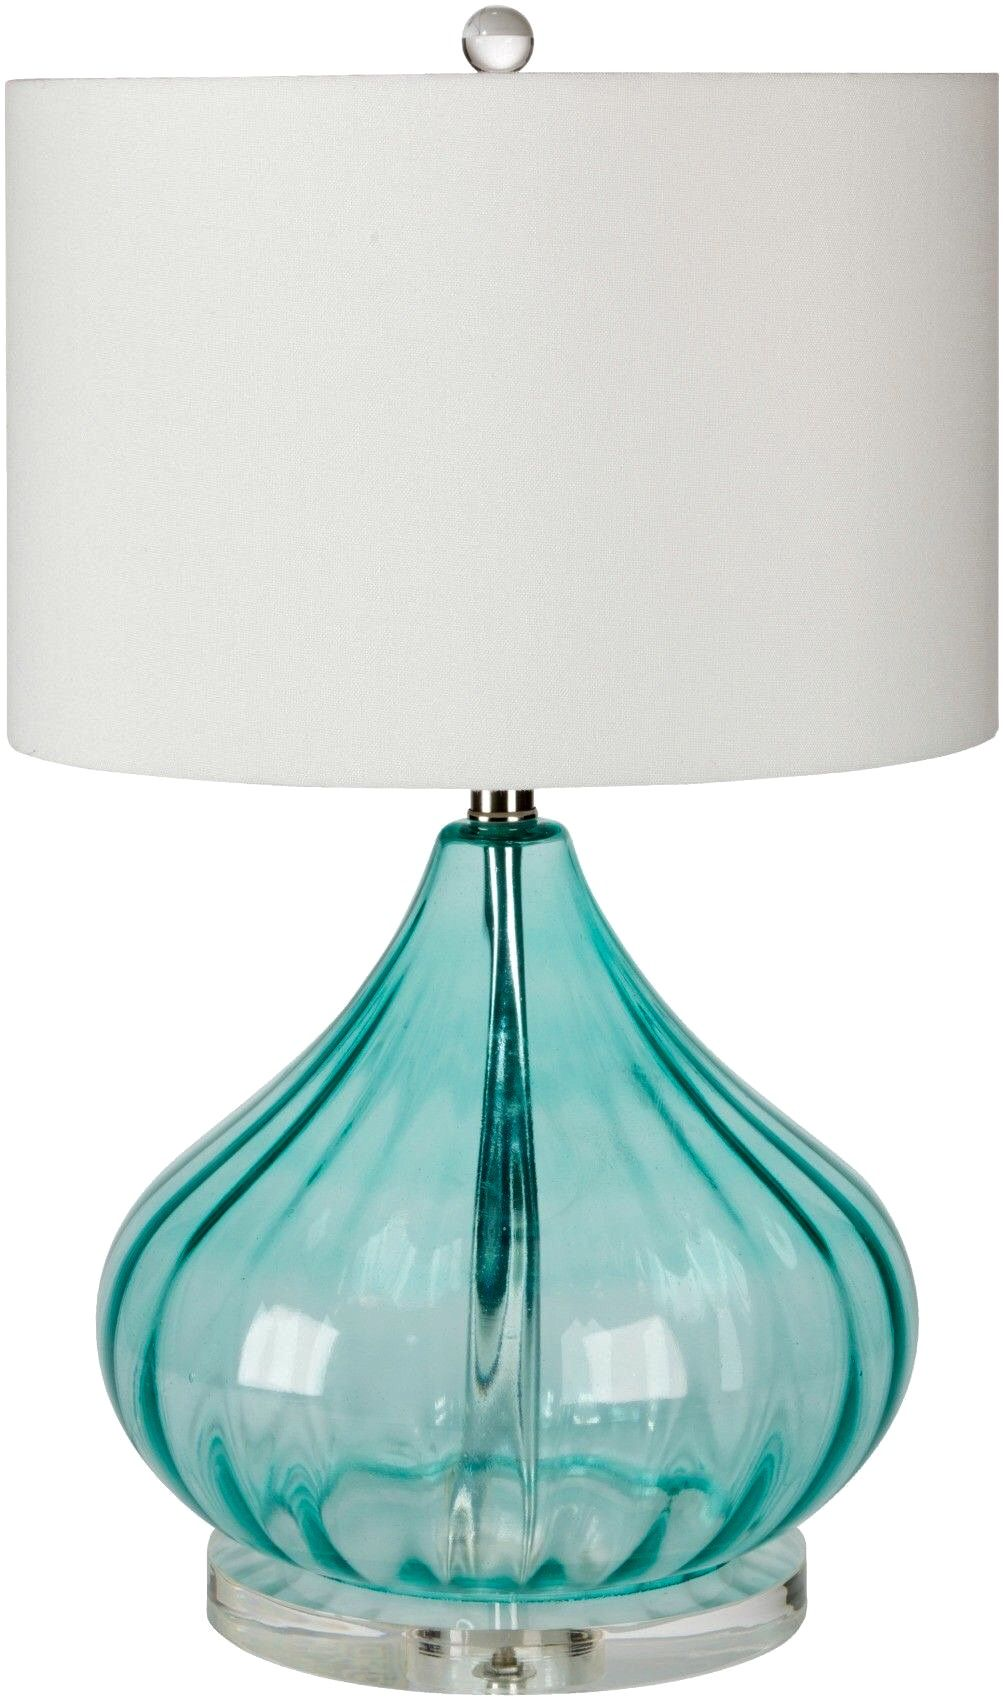 ceramic perugia product lamp blue home detail green aqua coastal beach kathy kuo glazed